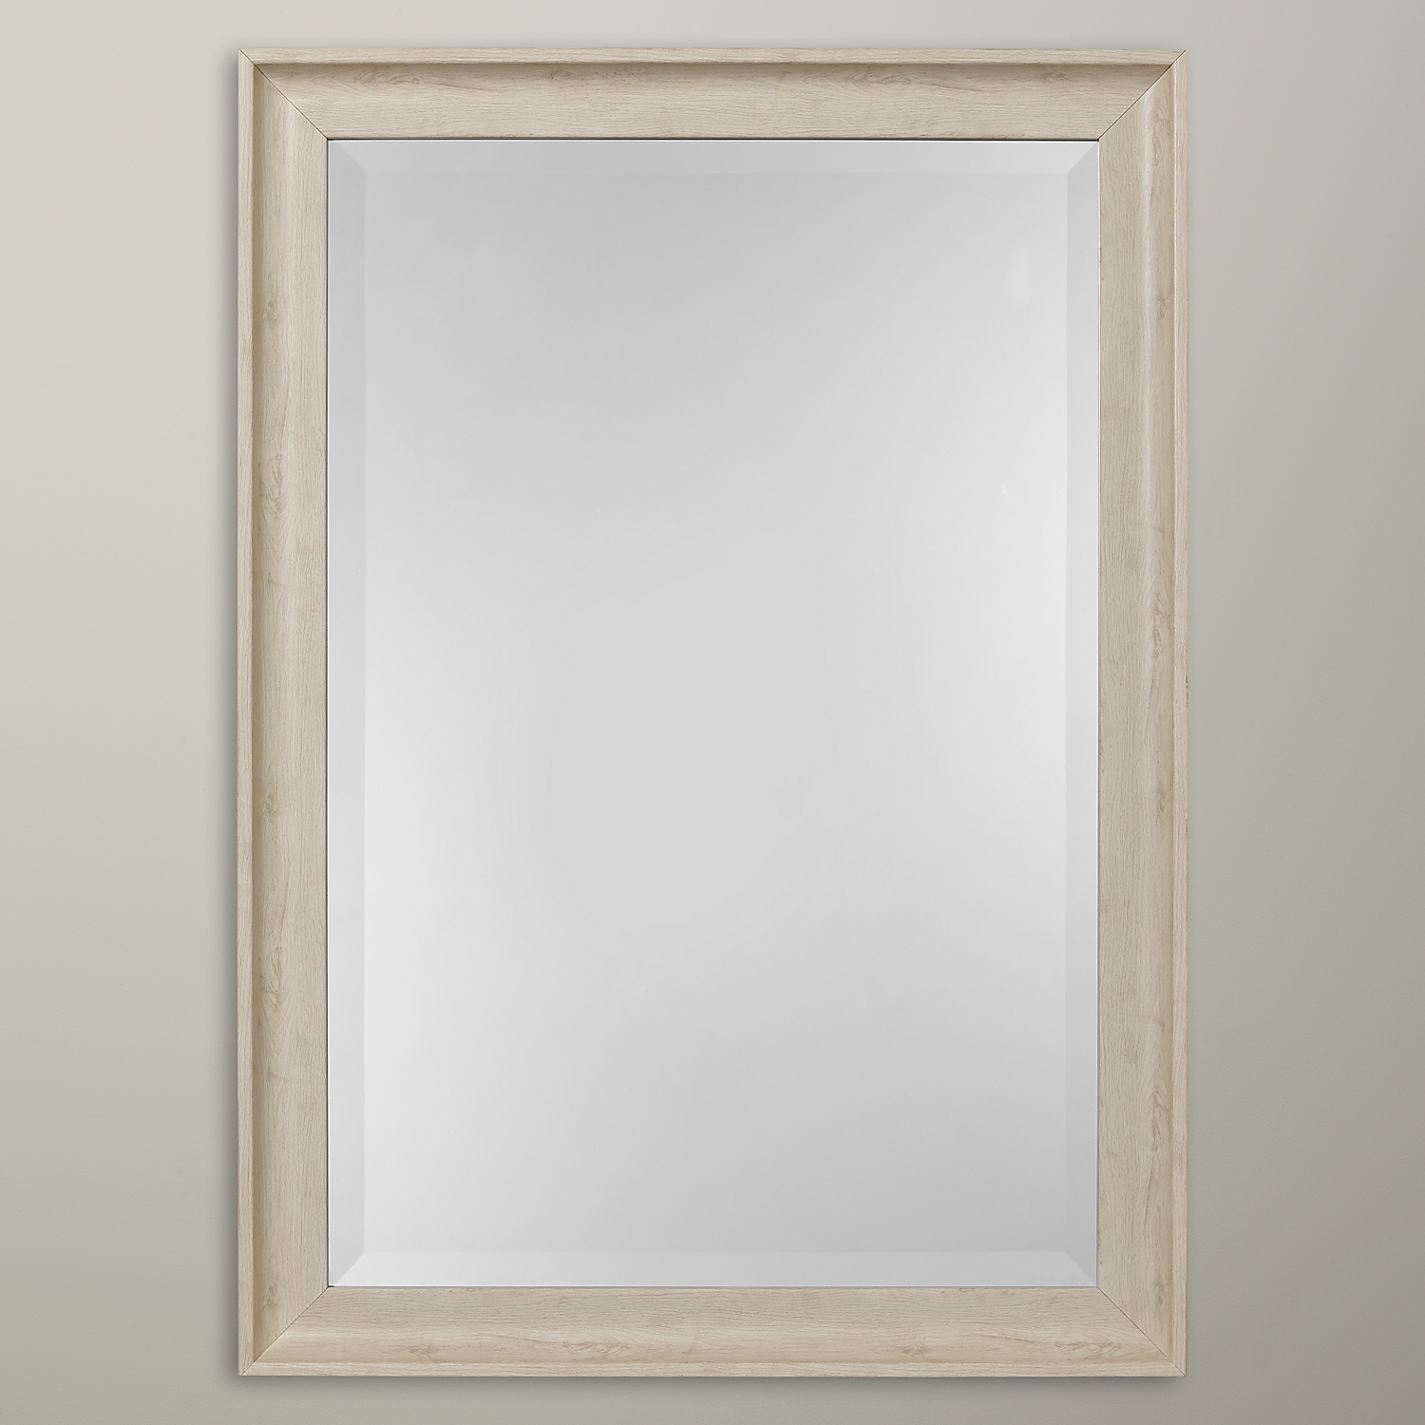 mirror john lewis. buy john lewis coastal white texture wall mirror, 50 x 70cm online at johnlewis. mirror